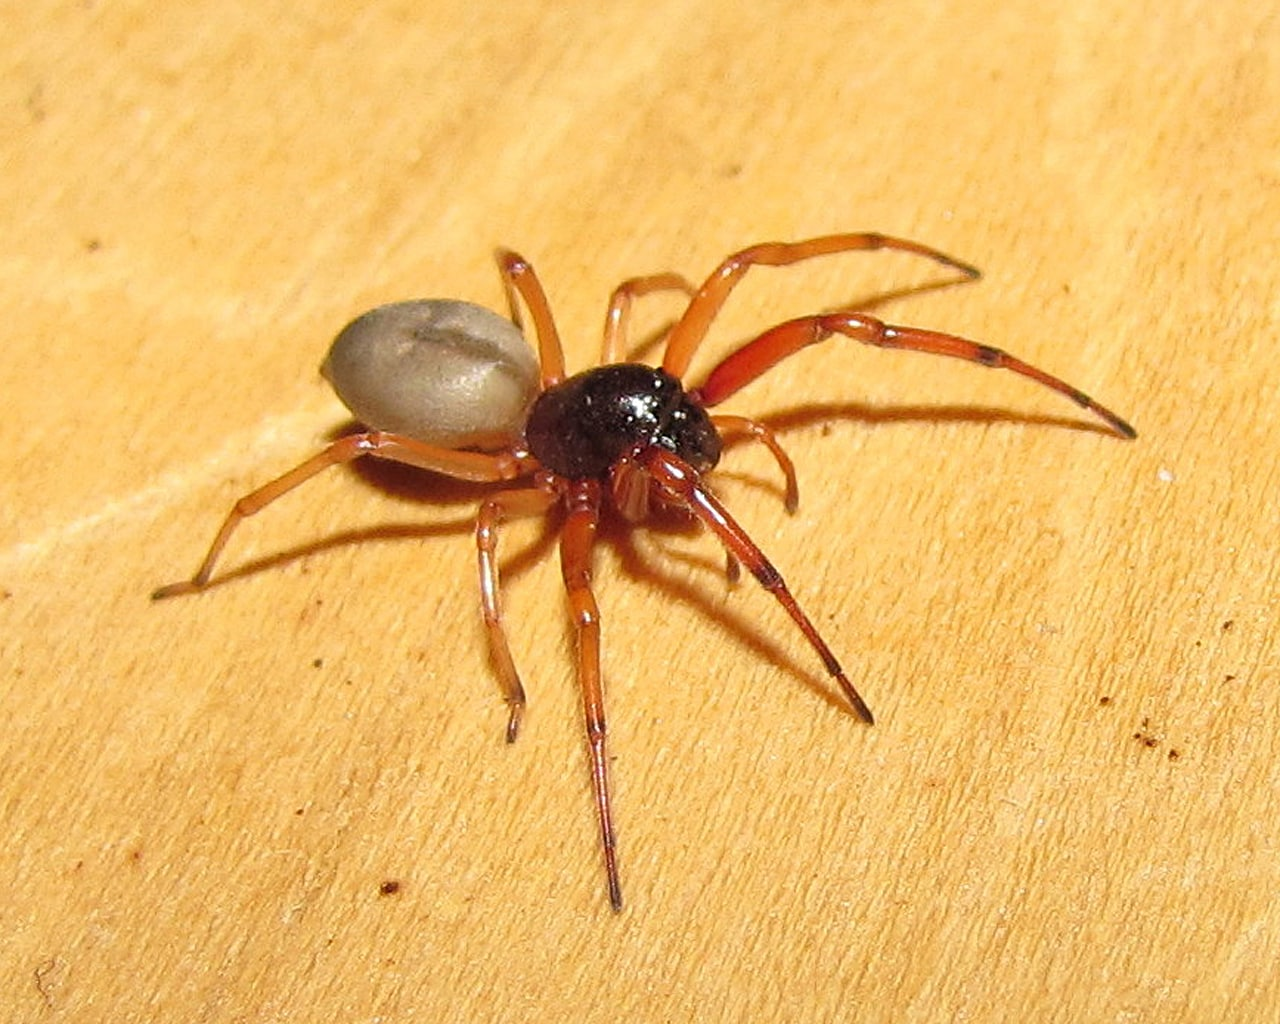 Picture of Trachelas tranquillus (Broad-faced Sac Spider) - Female - Lateral